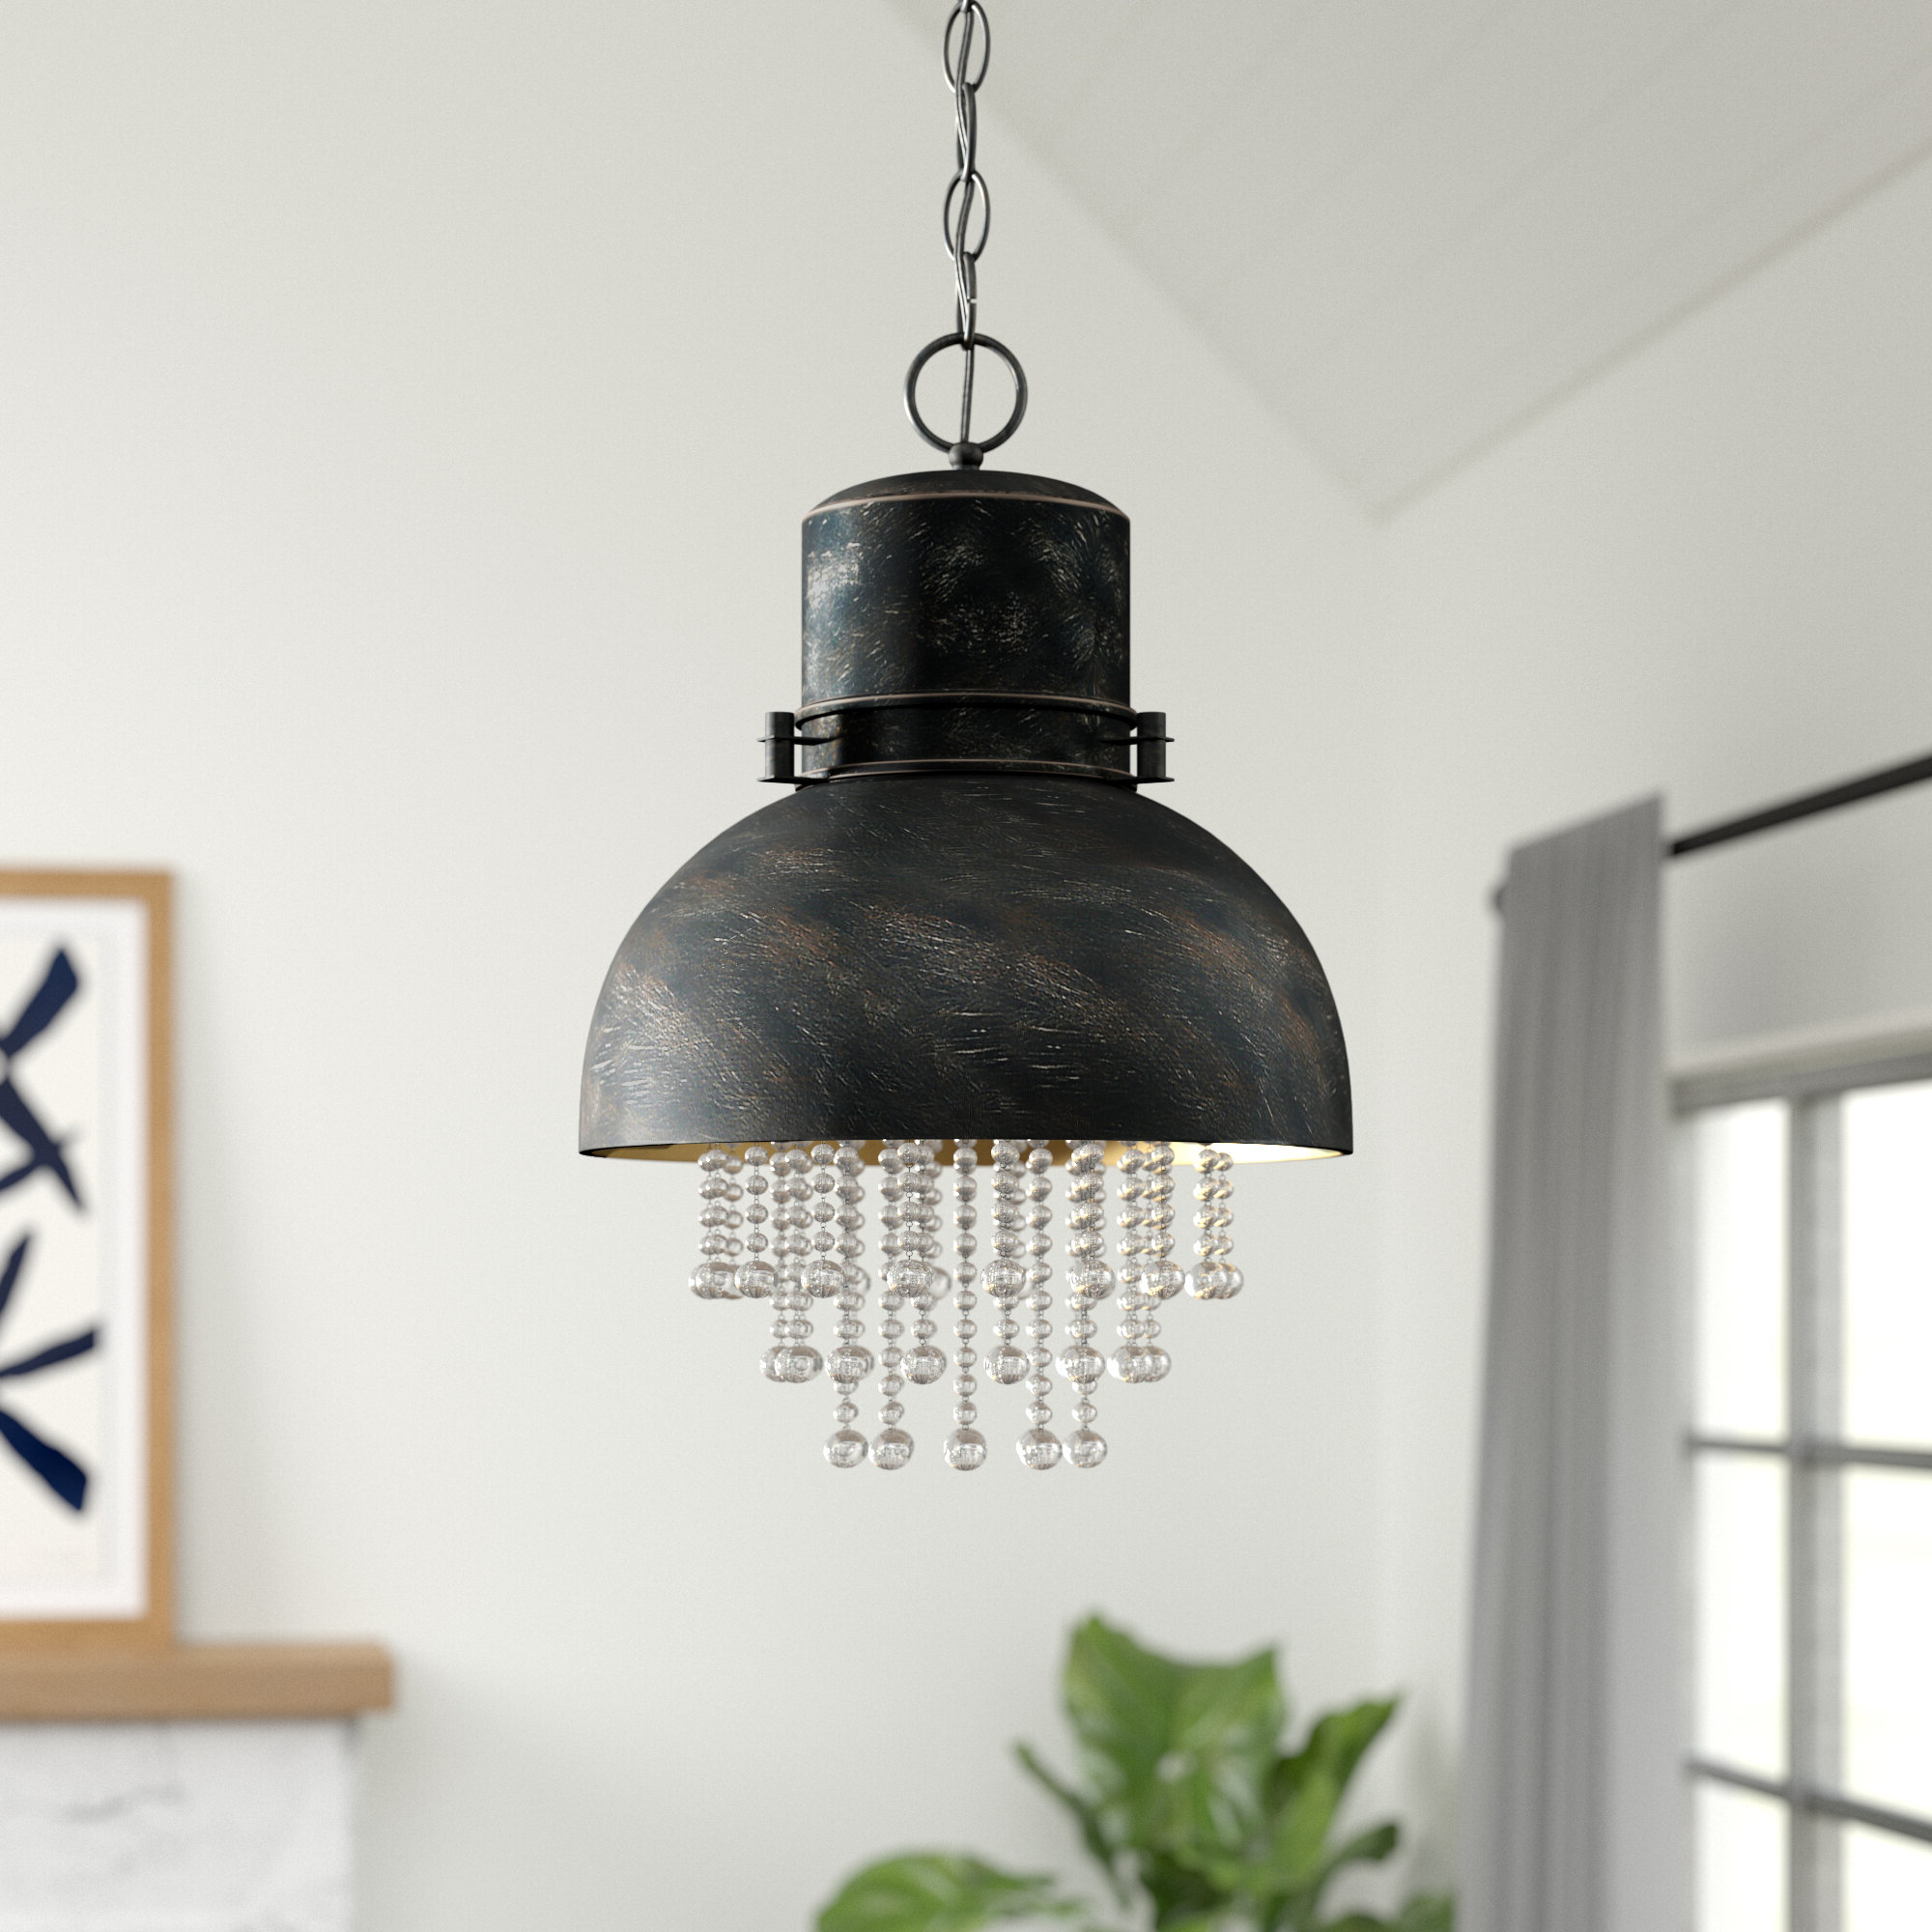 Southlake 1 Light Single Dome Pendants Intended For Well Known Monadnock 1 Light Single Dome Pendant (View 17 of 25)